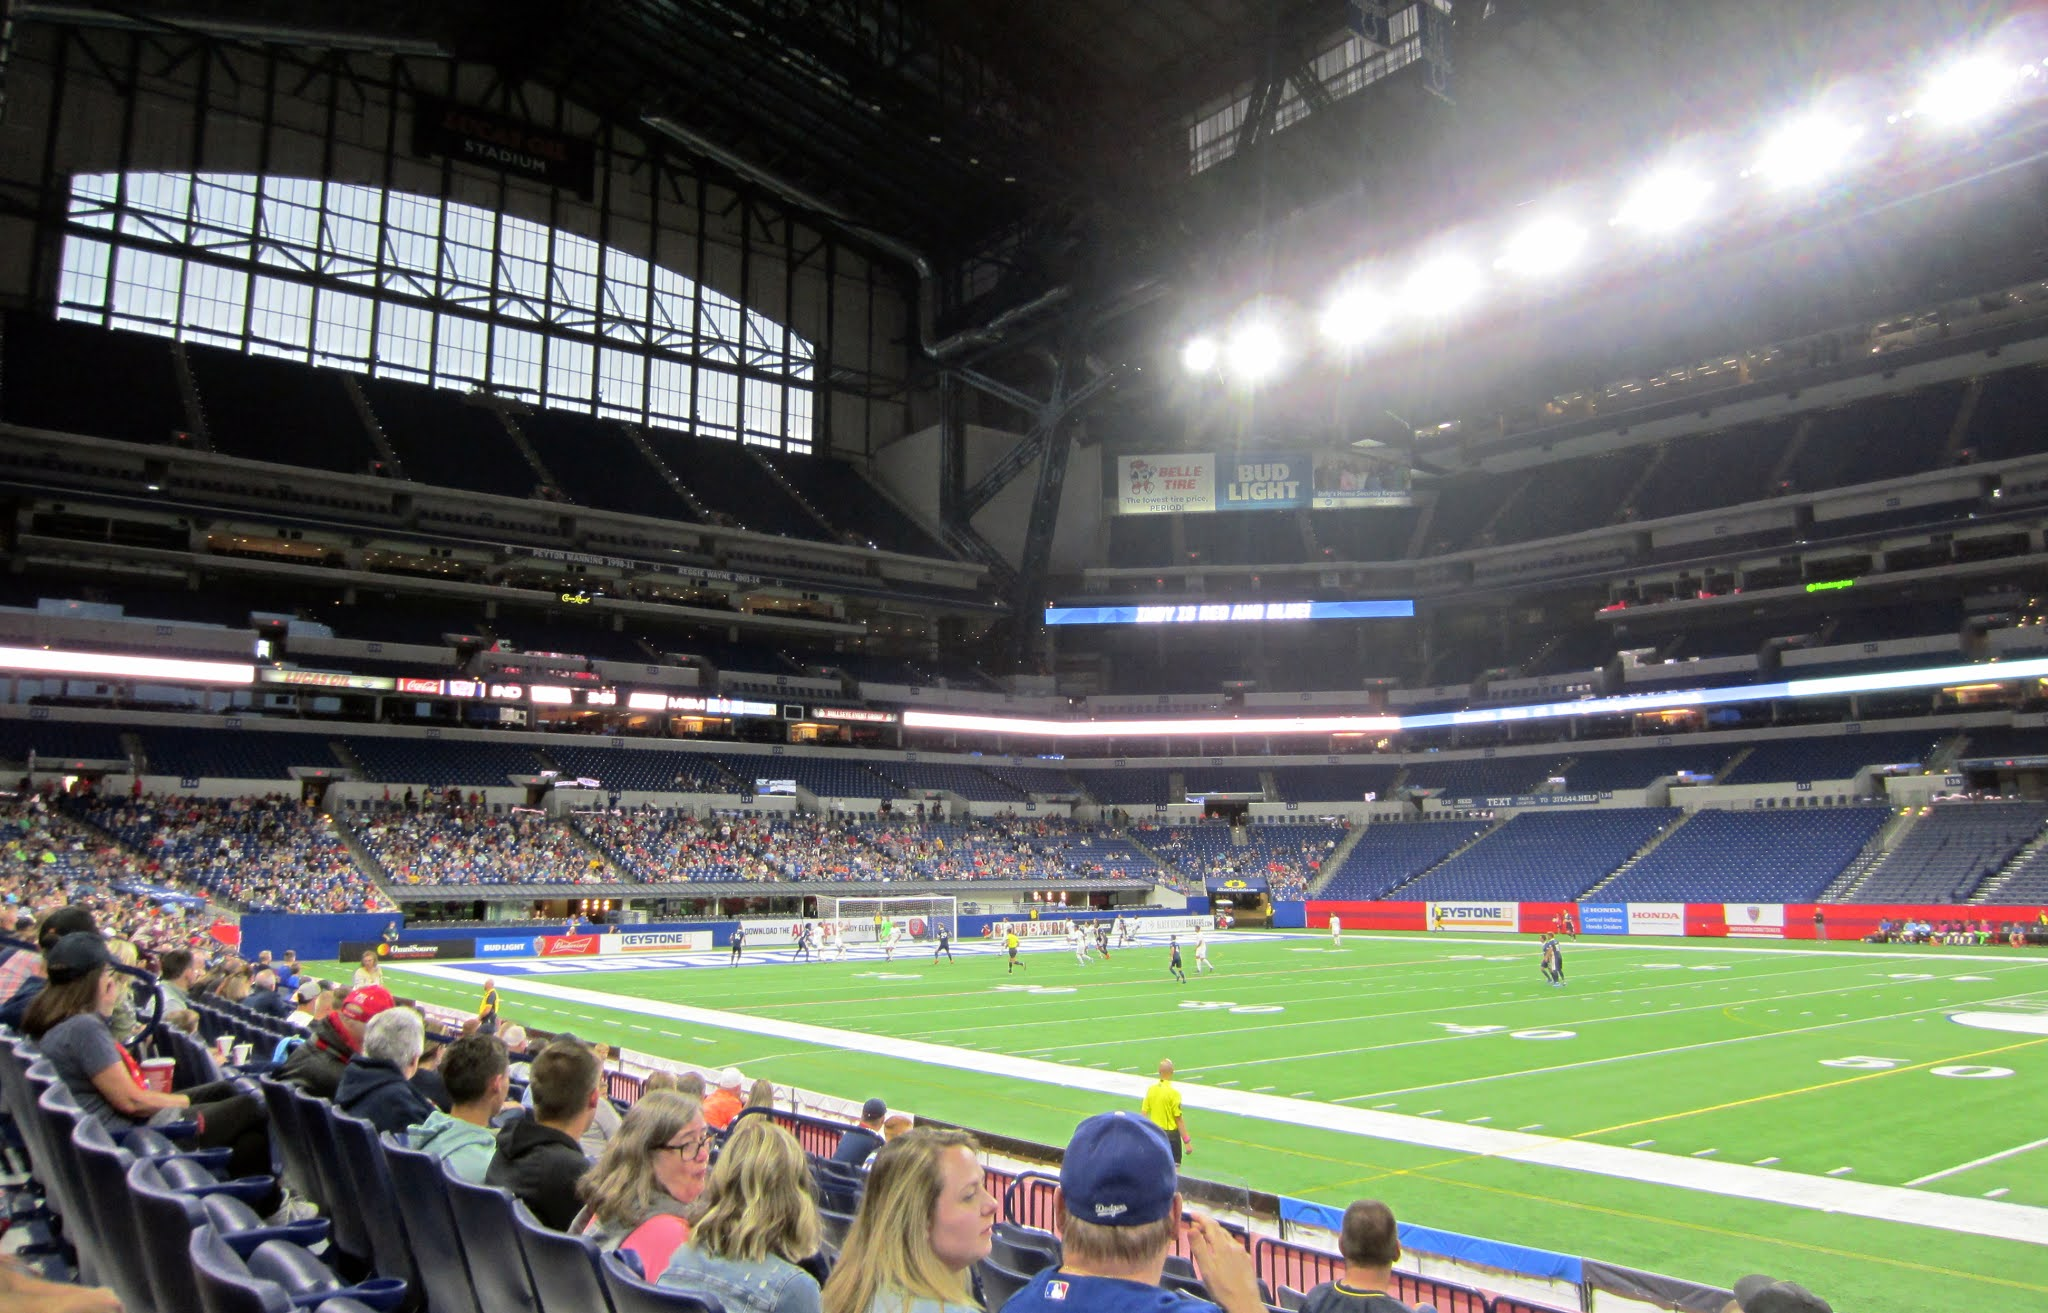 A look at the South Goal section at Lucas Oil Stadium